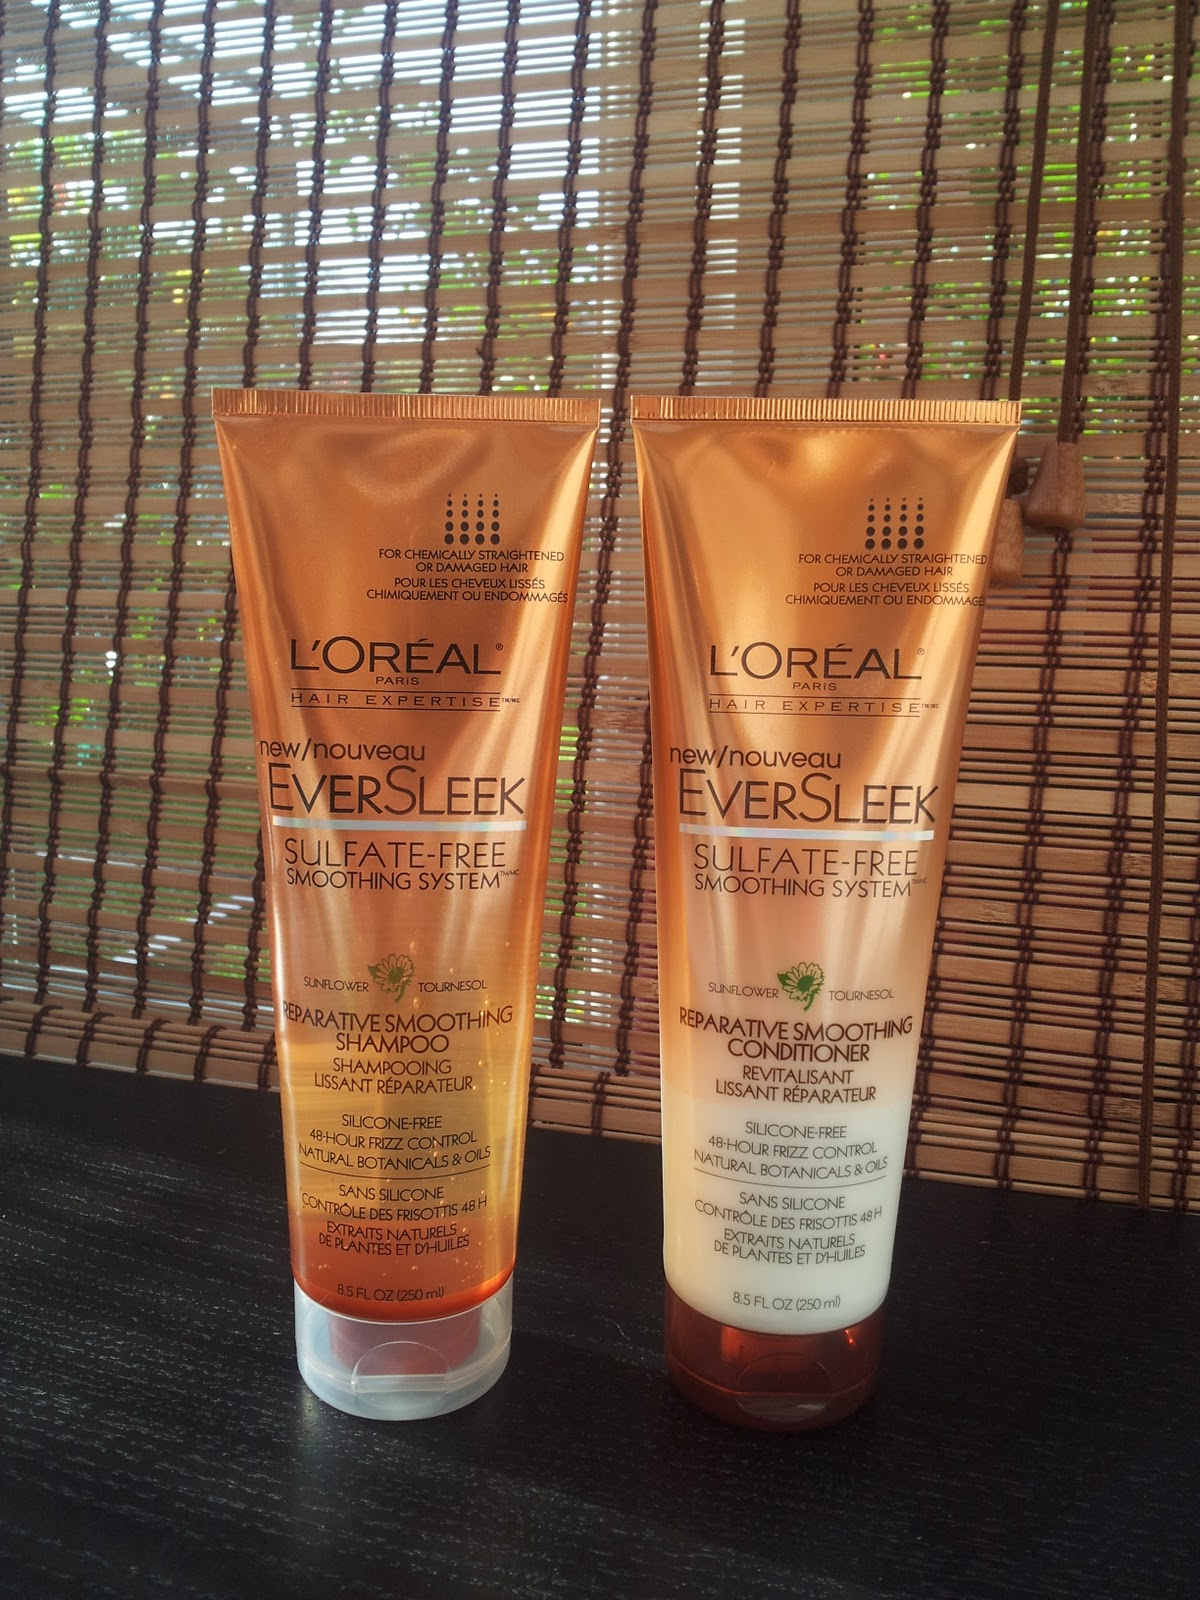 How To Use Loreal Hair Spa Shampoo And Conditioner